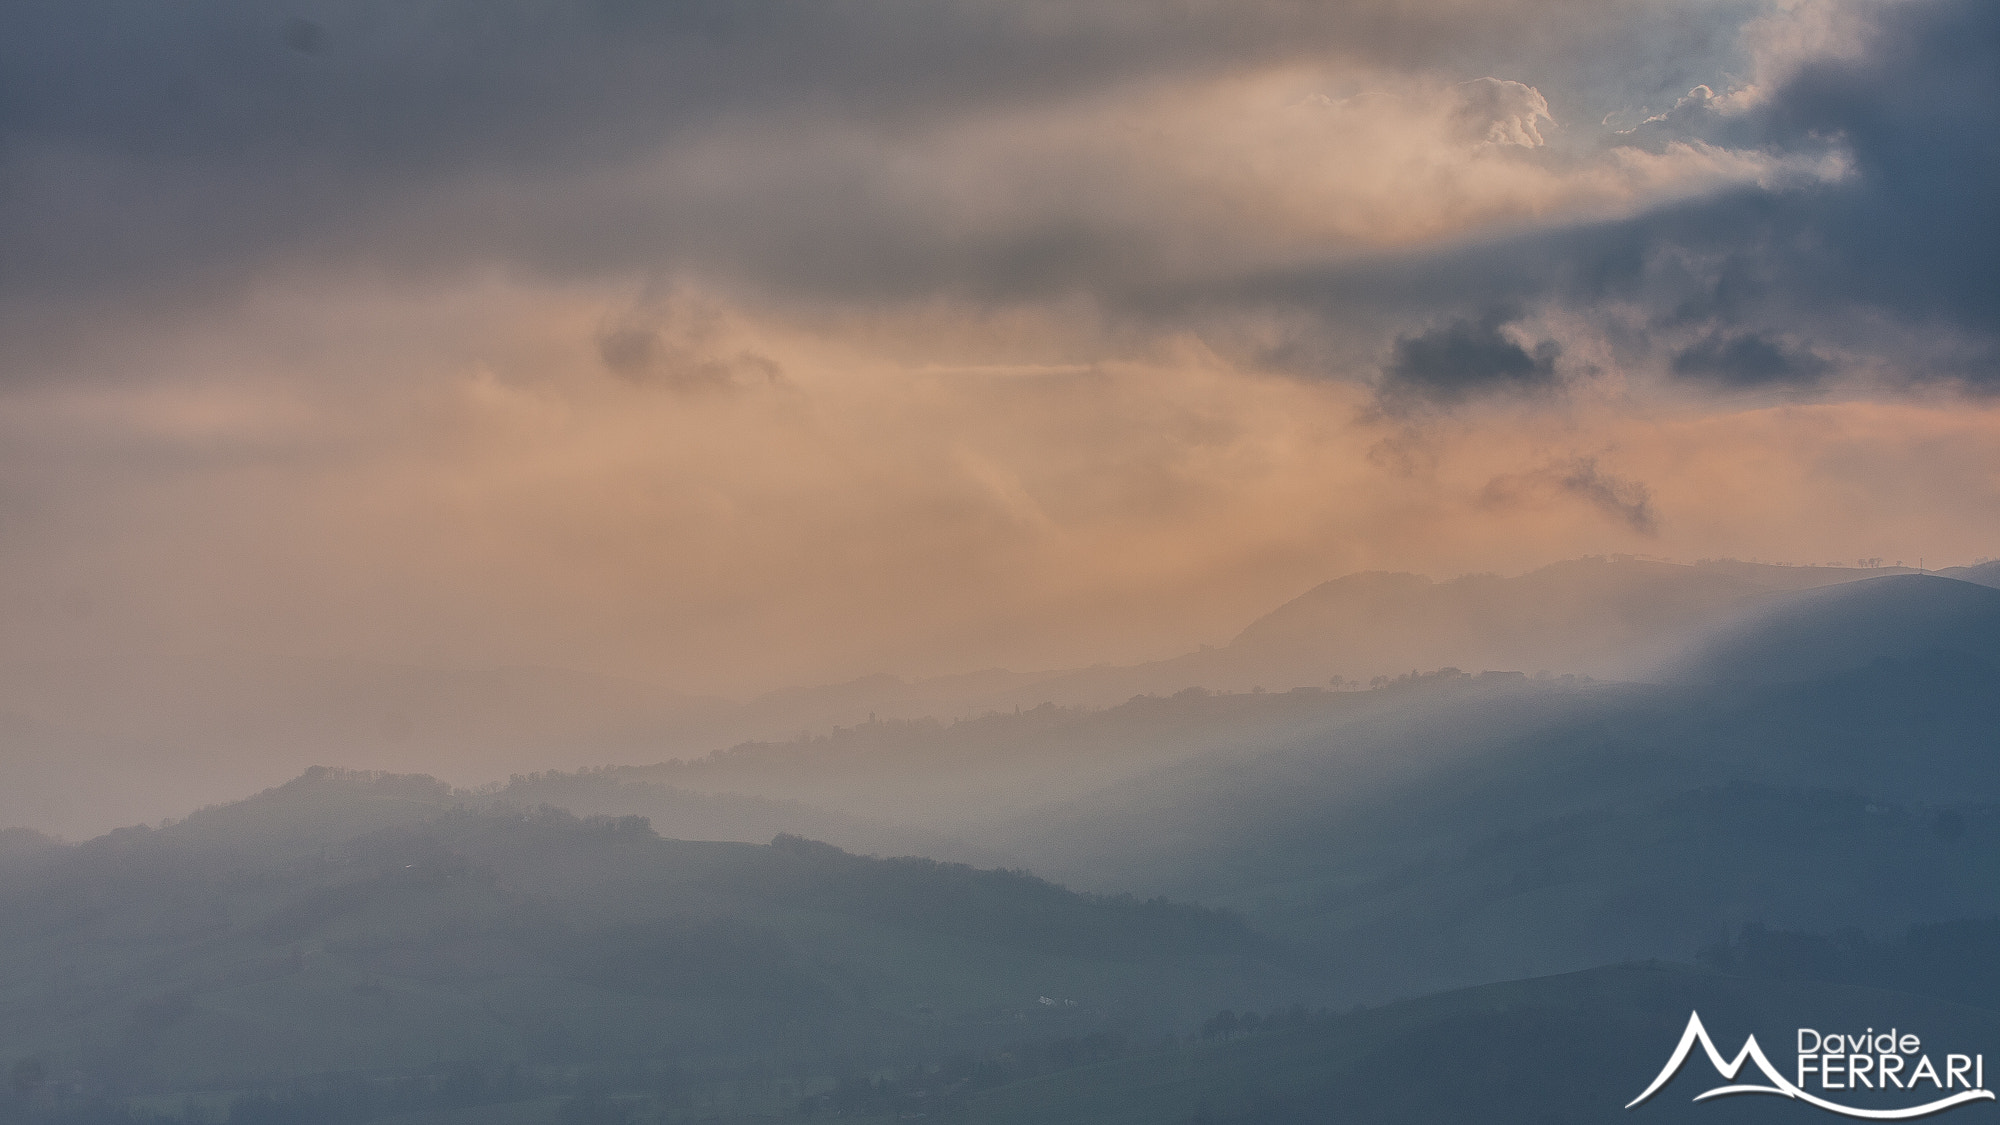 Photograph Layers of Light by Davide Ferrari on 500px